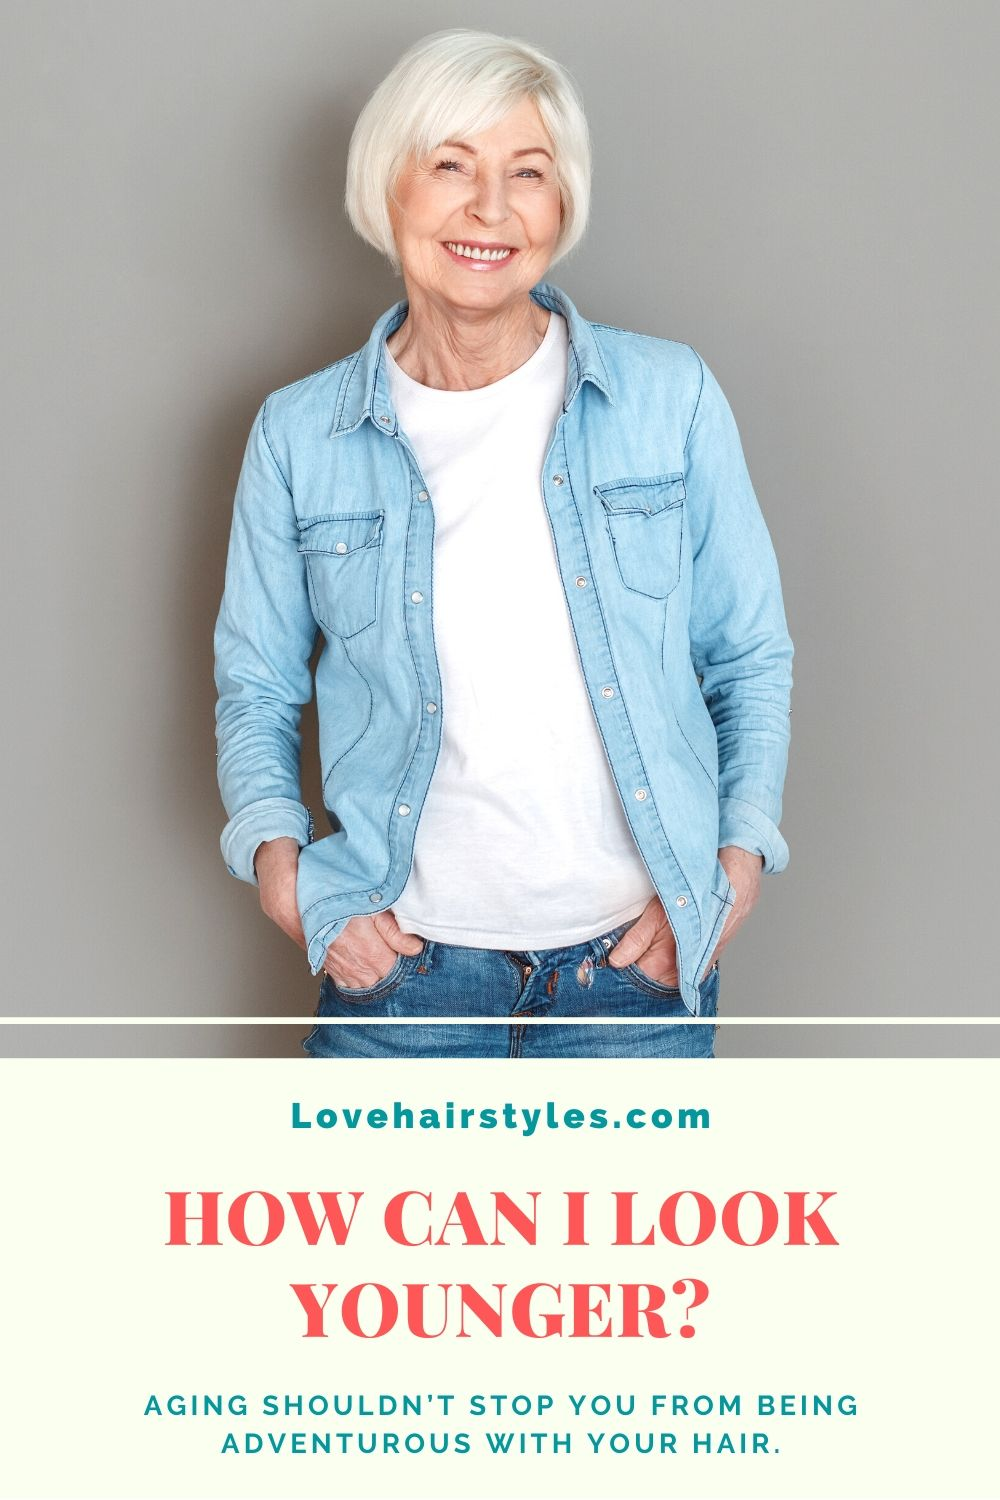 How to look younger at 60?